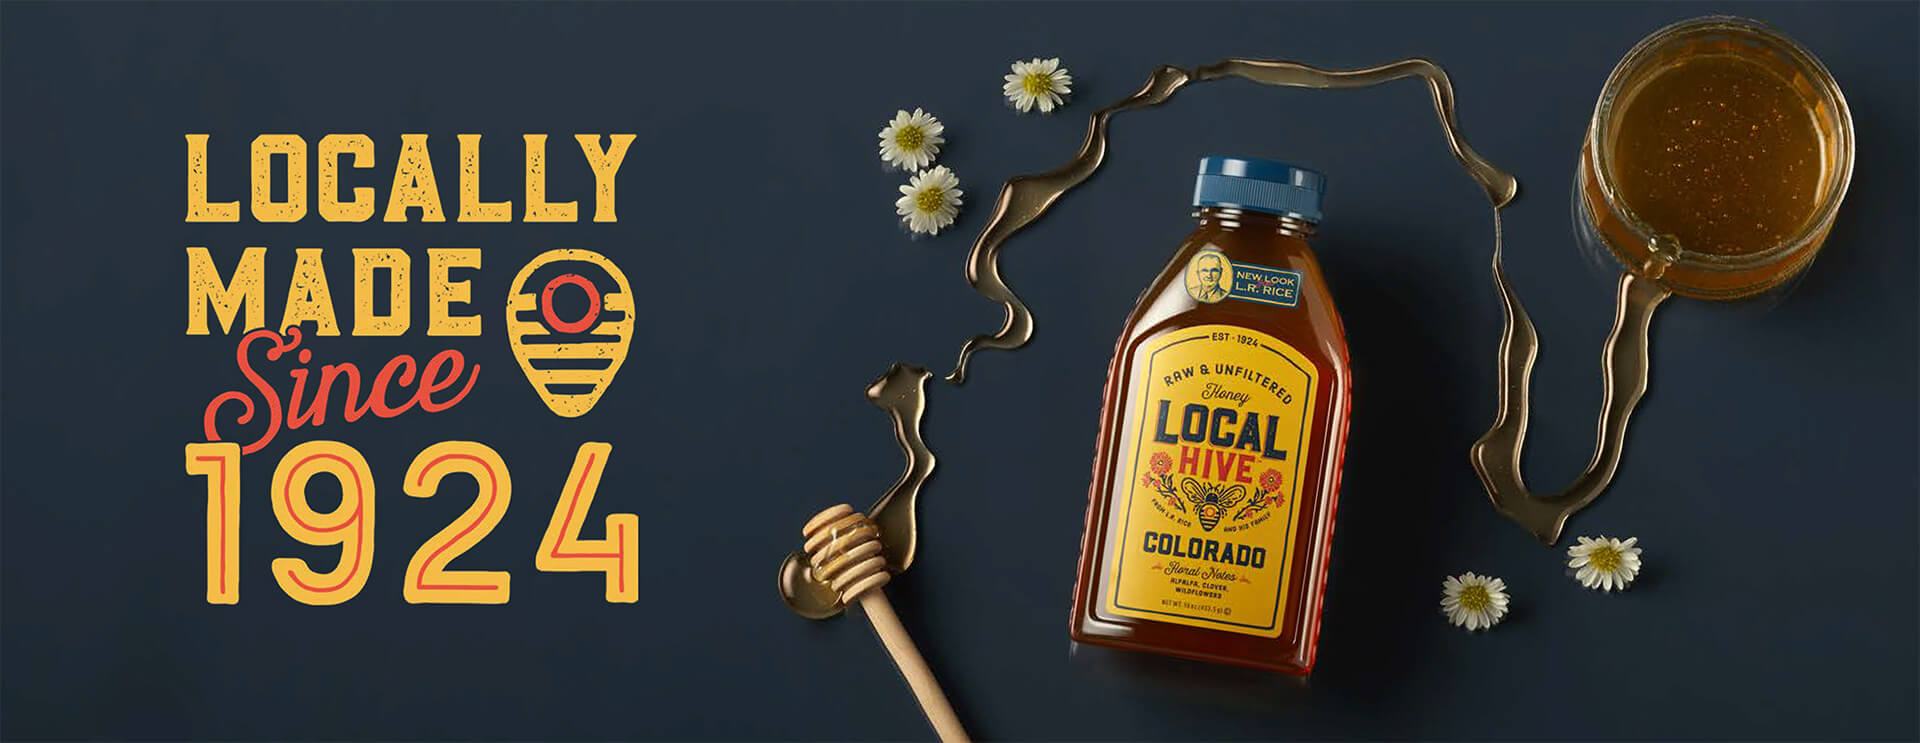 Local Hive - locally made since 1924